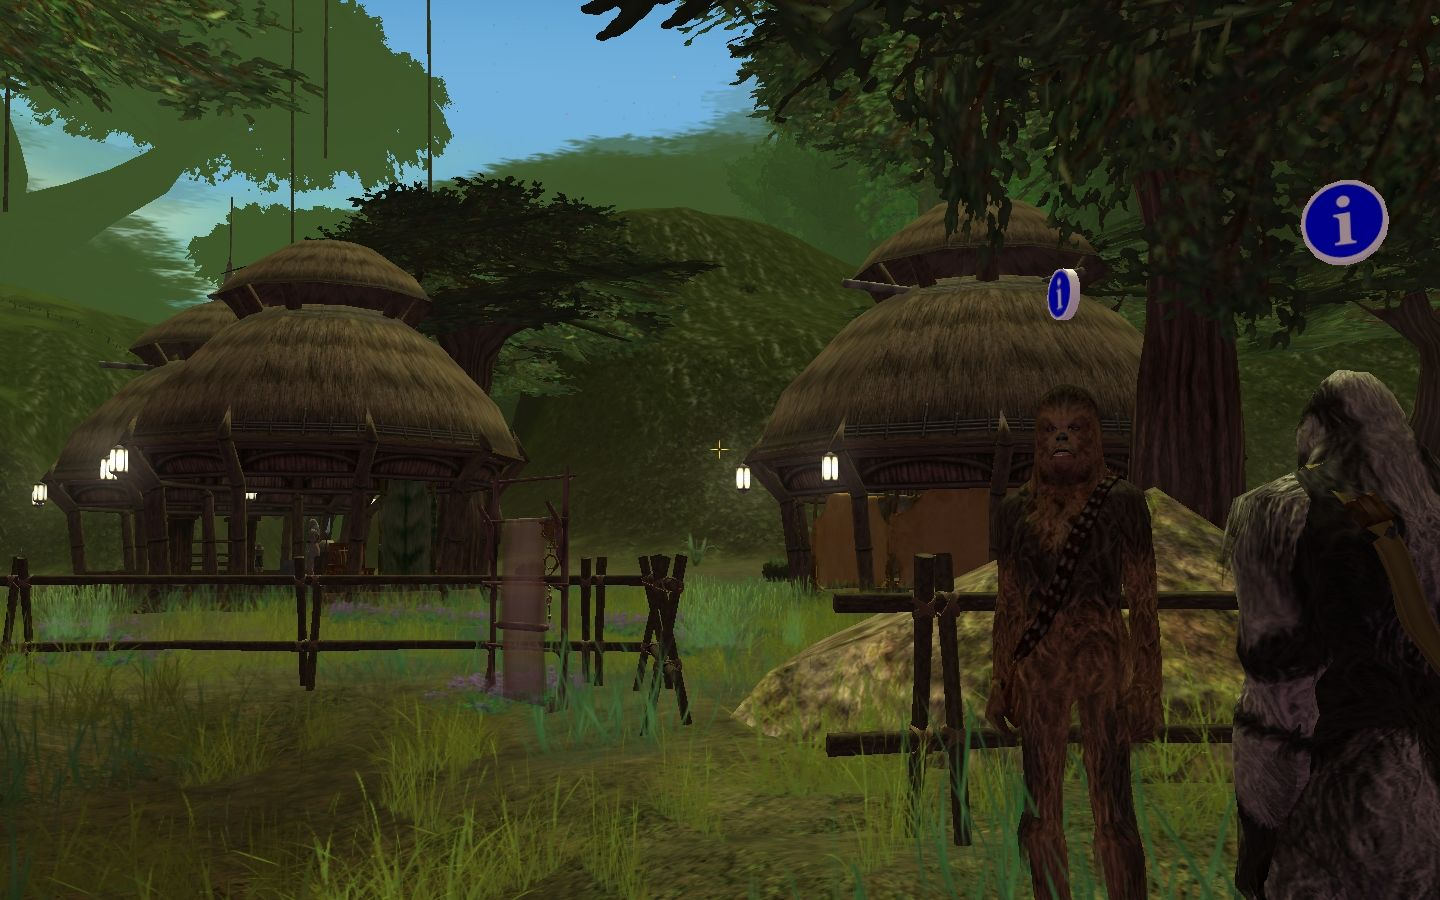 Star Wars: Galaxies - Episode III Rage of the Wookiees Windows Kachirho village